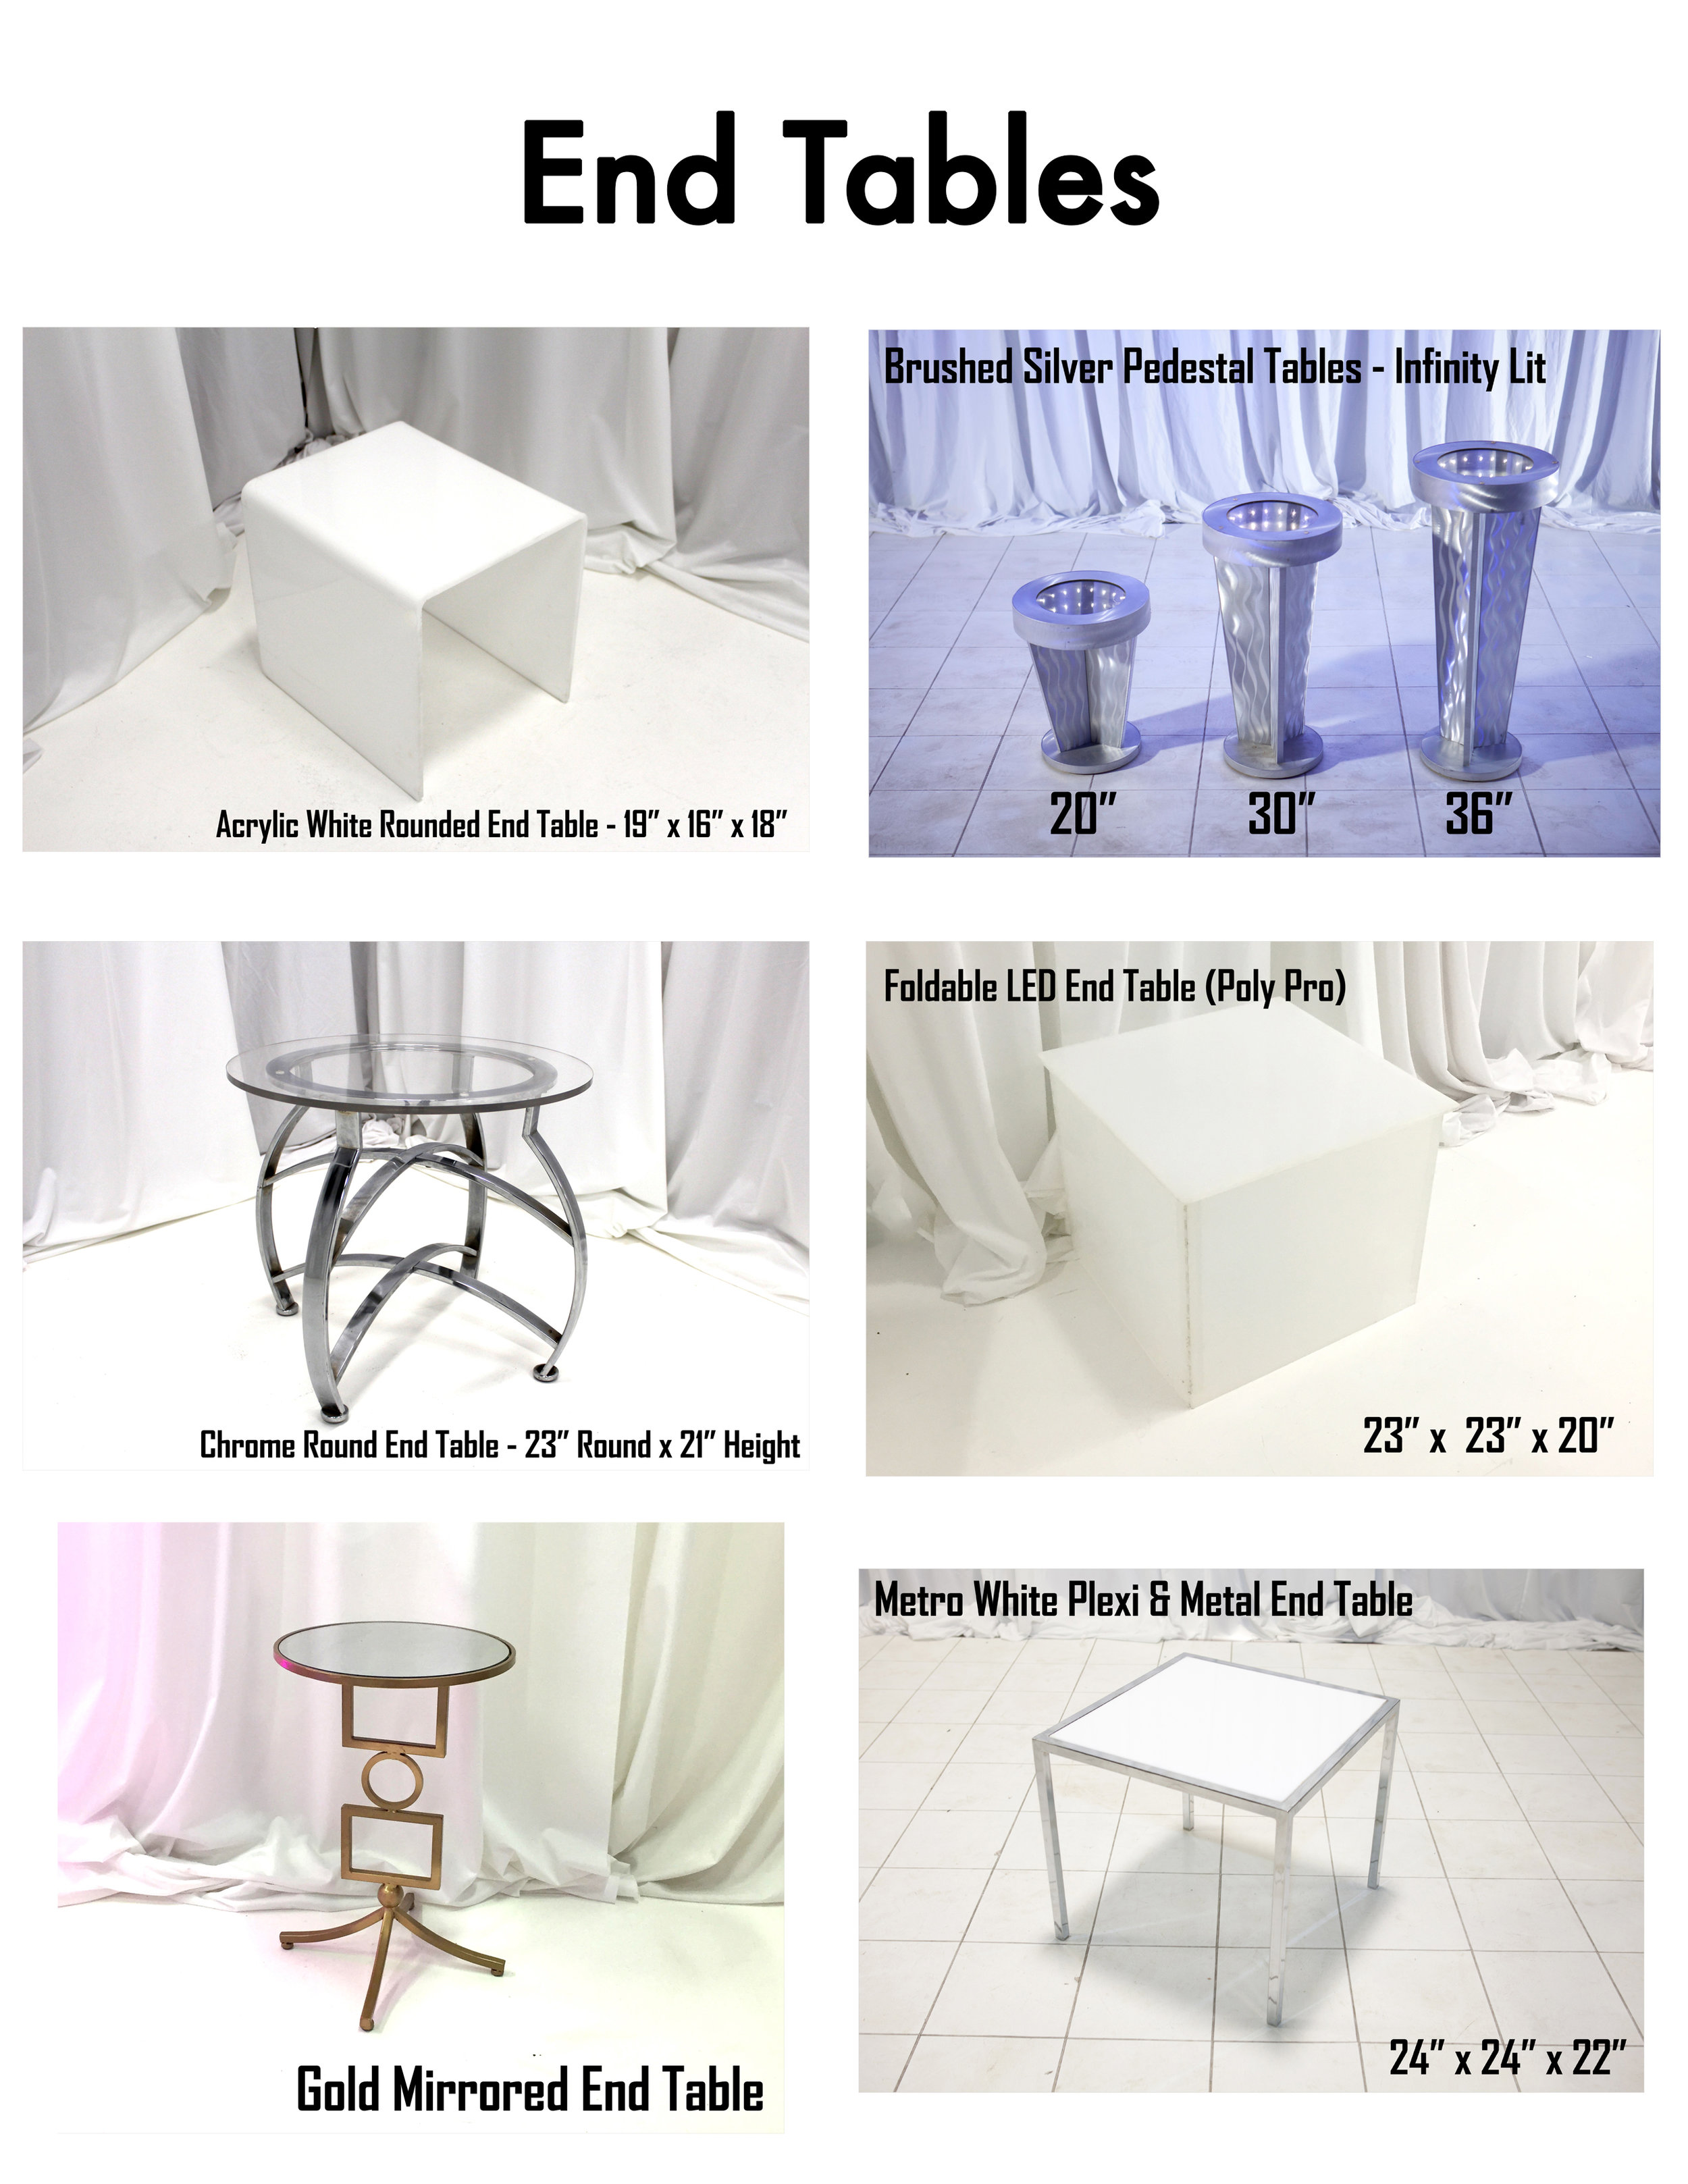 048-P47_End Tables.jpg